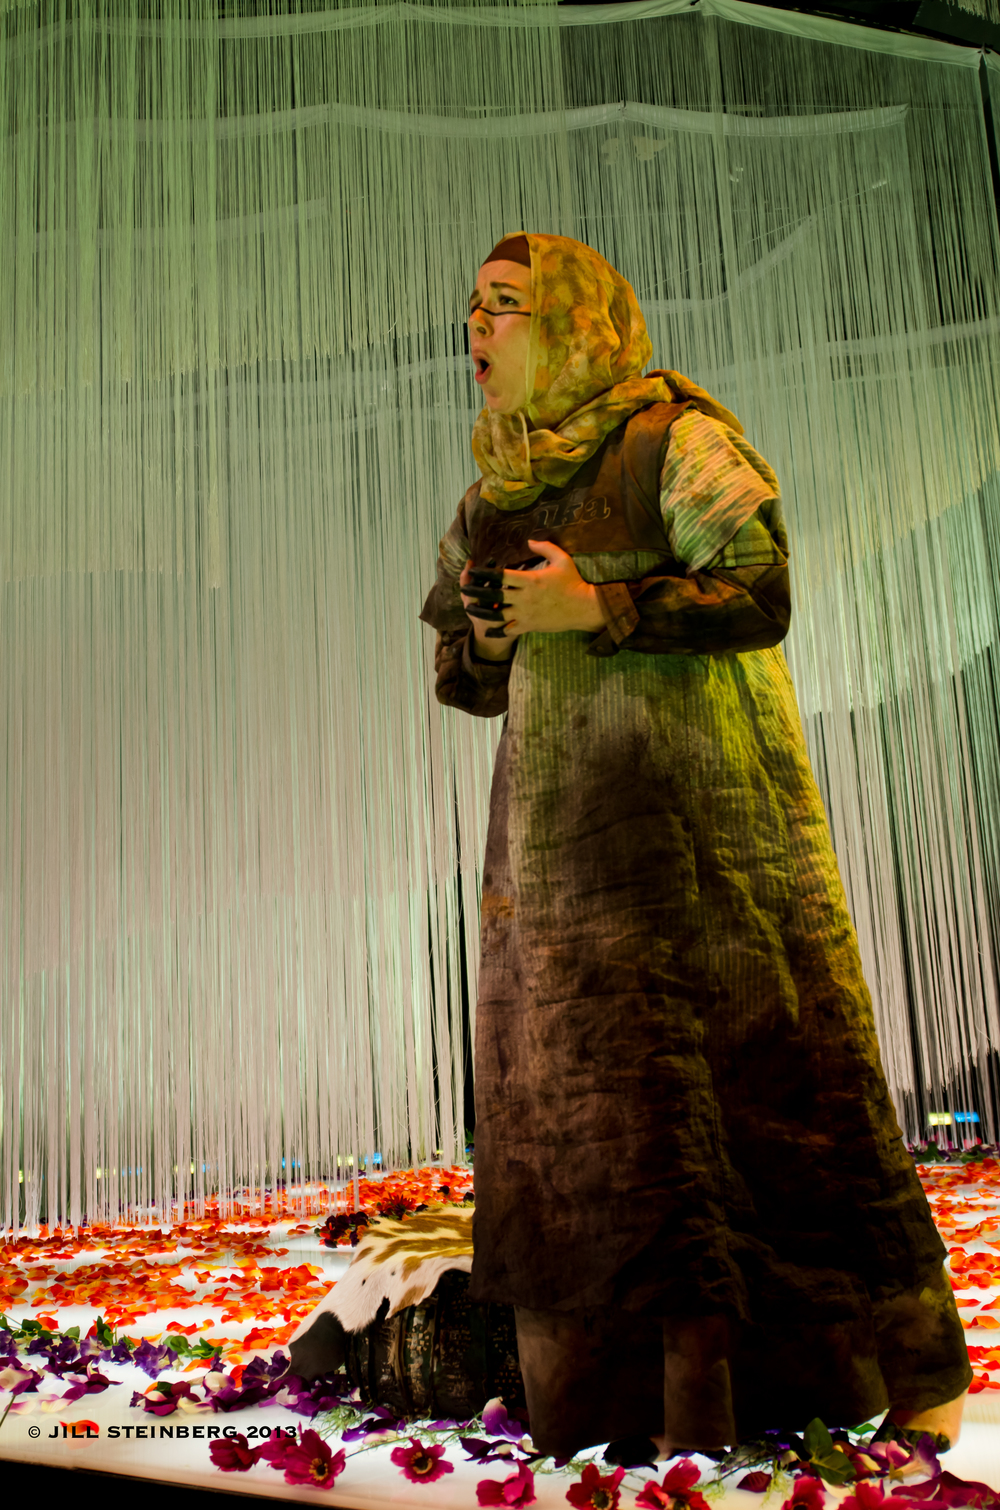 Sumeida's Song at HERE Arts Center (Prototype Festival 2013)